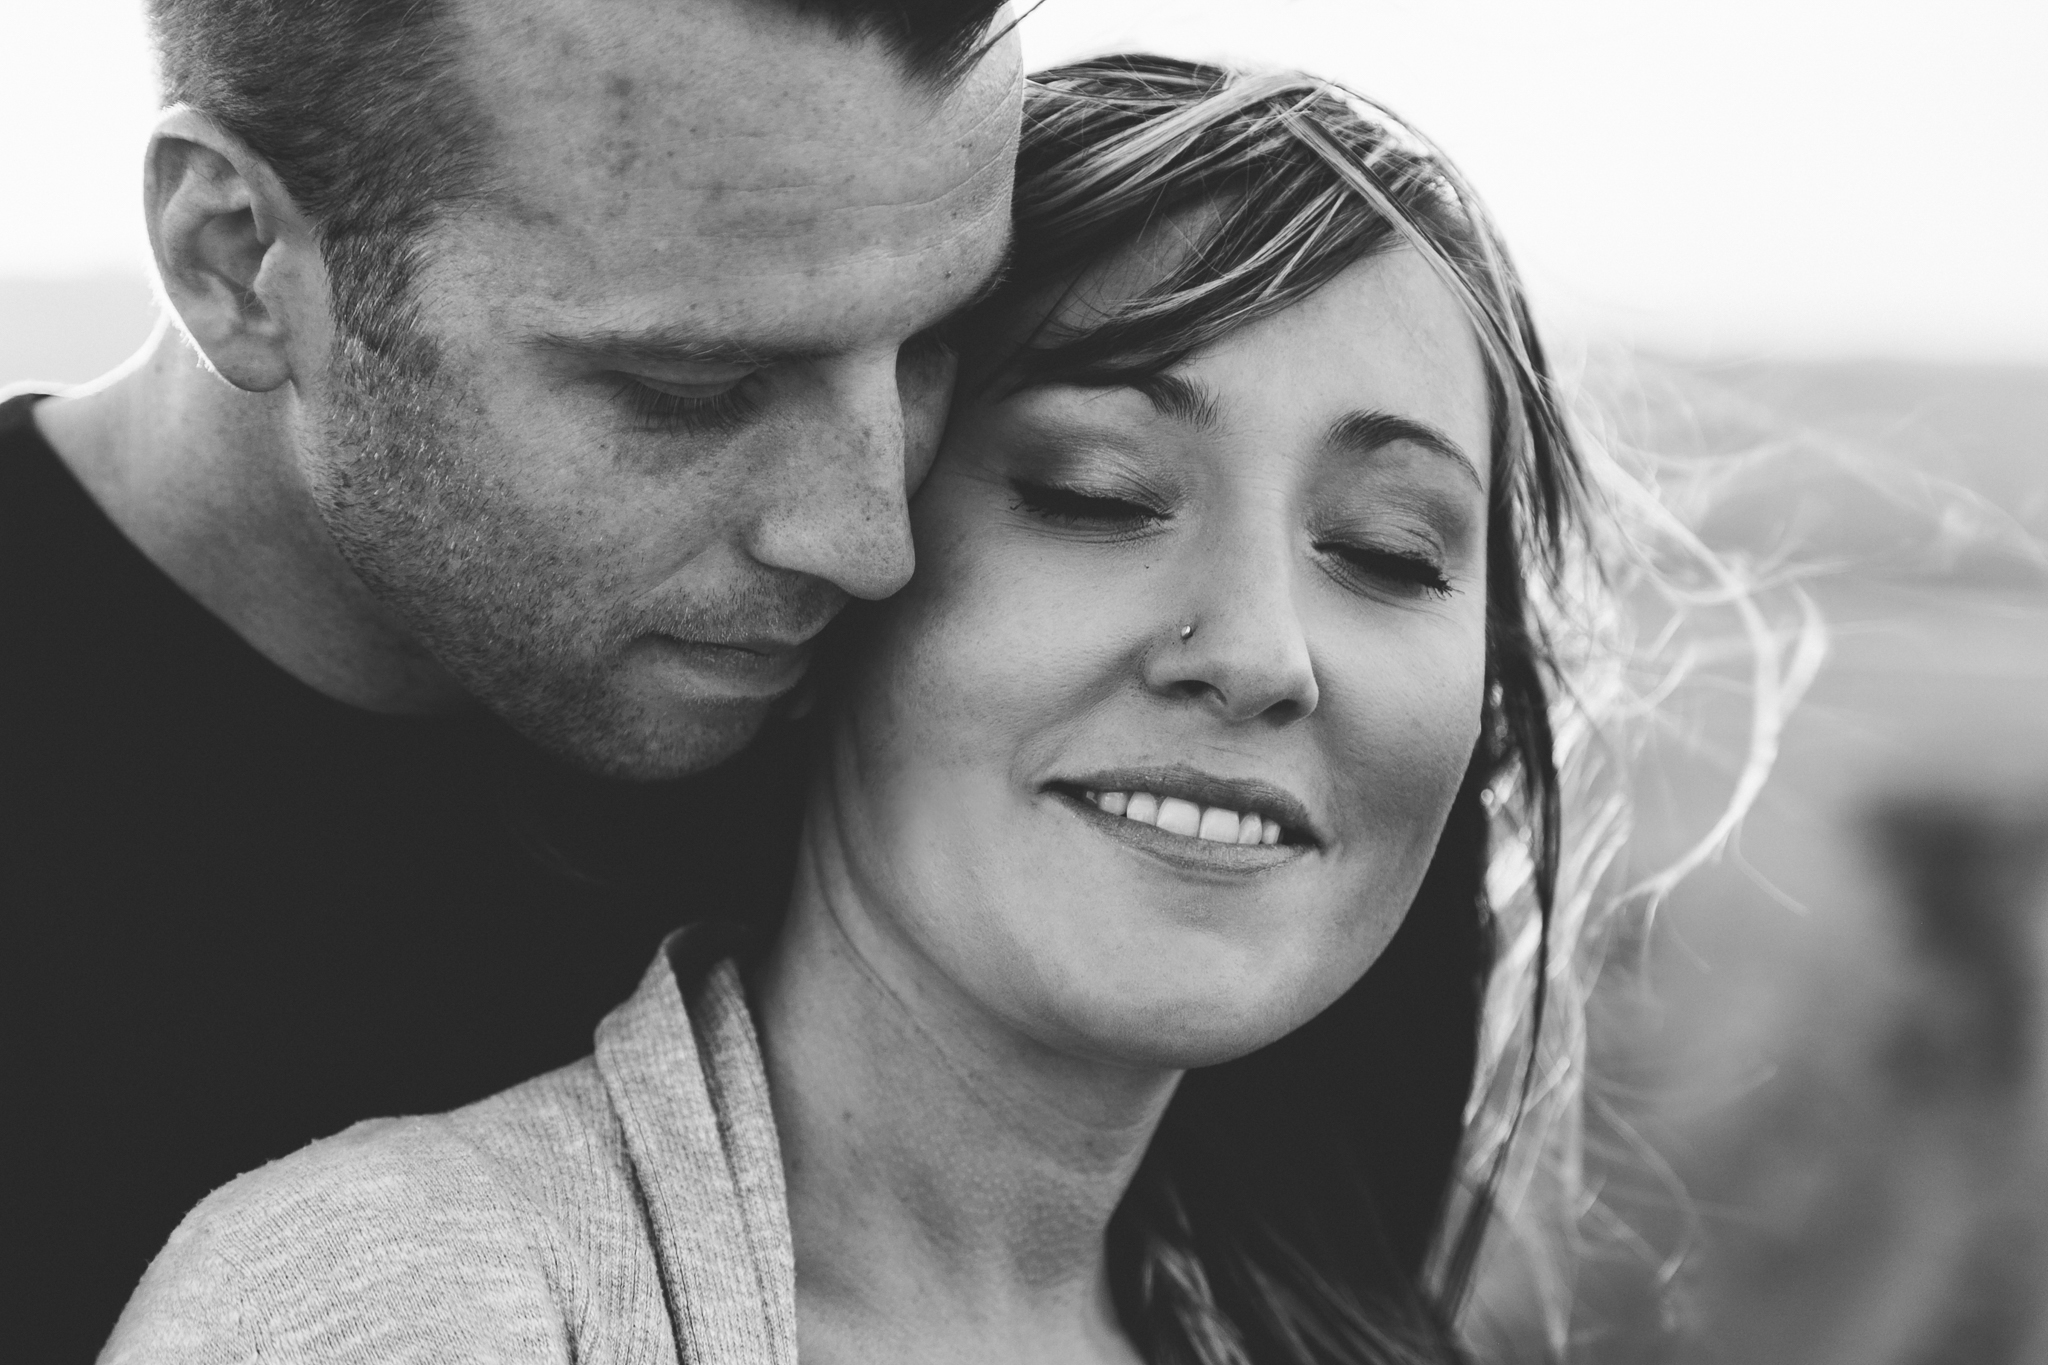 lethbridge-photographer-love-and-be-loved-photography-jessica-john-engagement-picture-image-photo-50.jpg